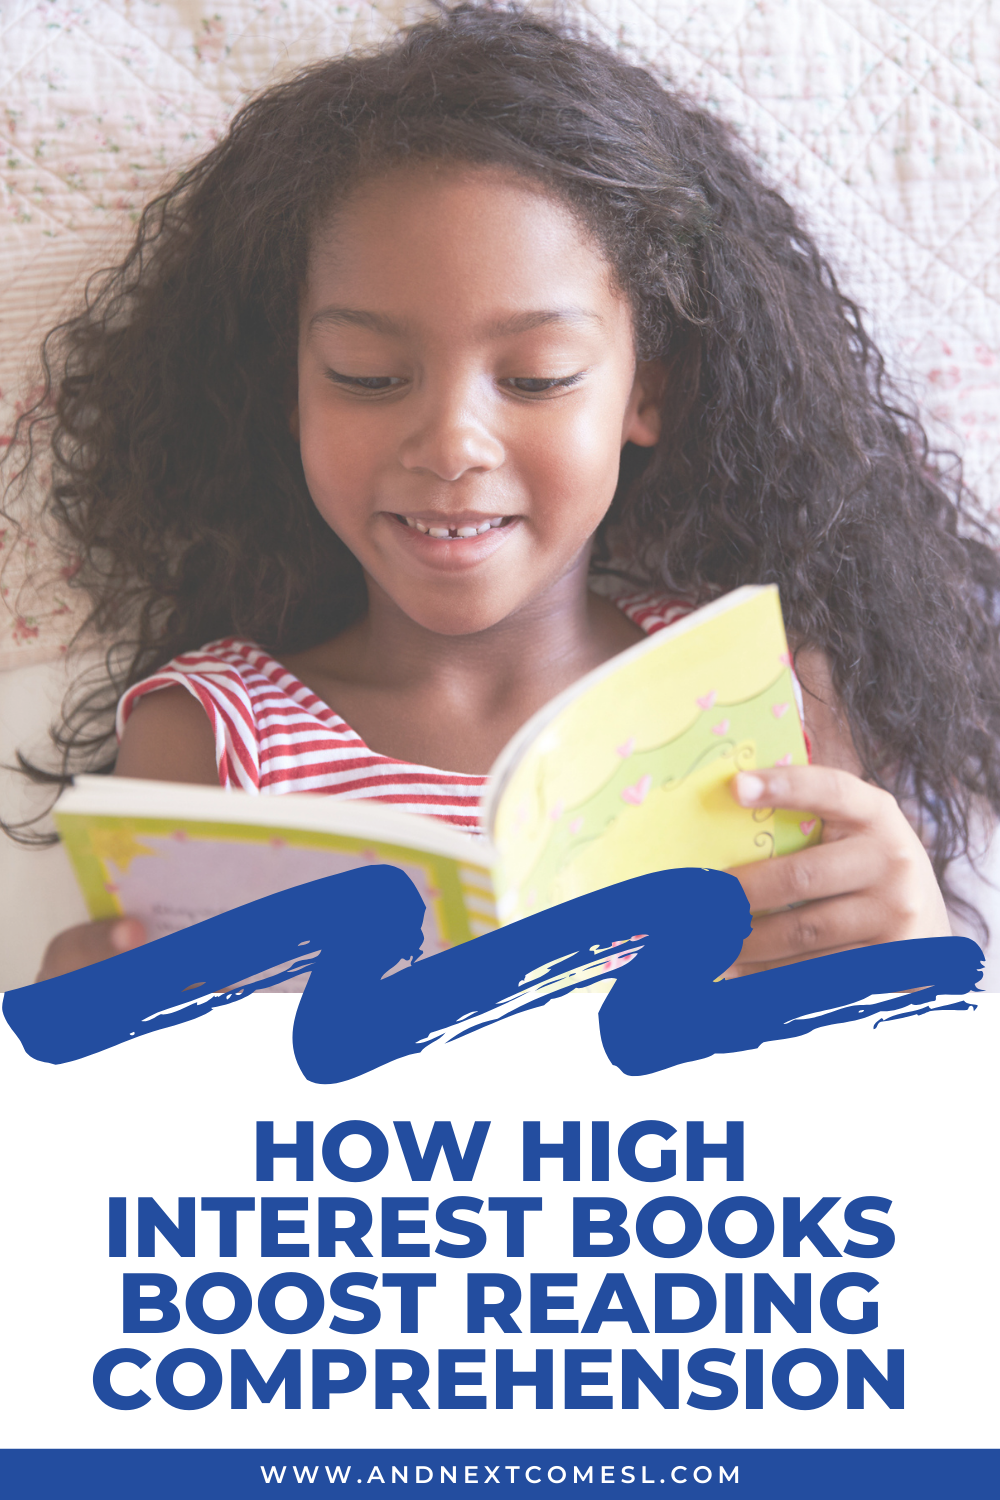 Hyperlexia and reading comprehension: how using high interest books can boost reading comprehension skills